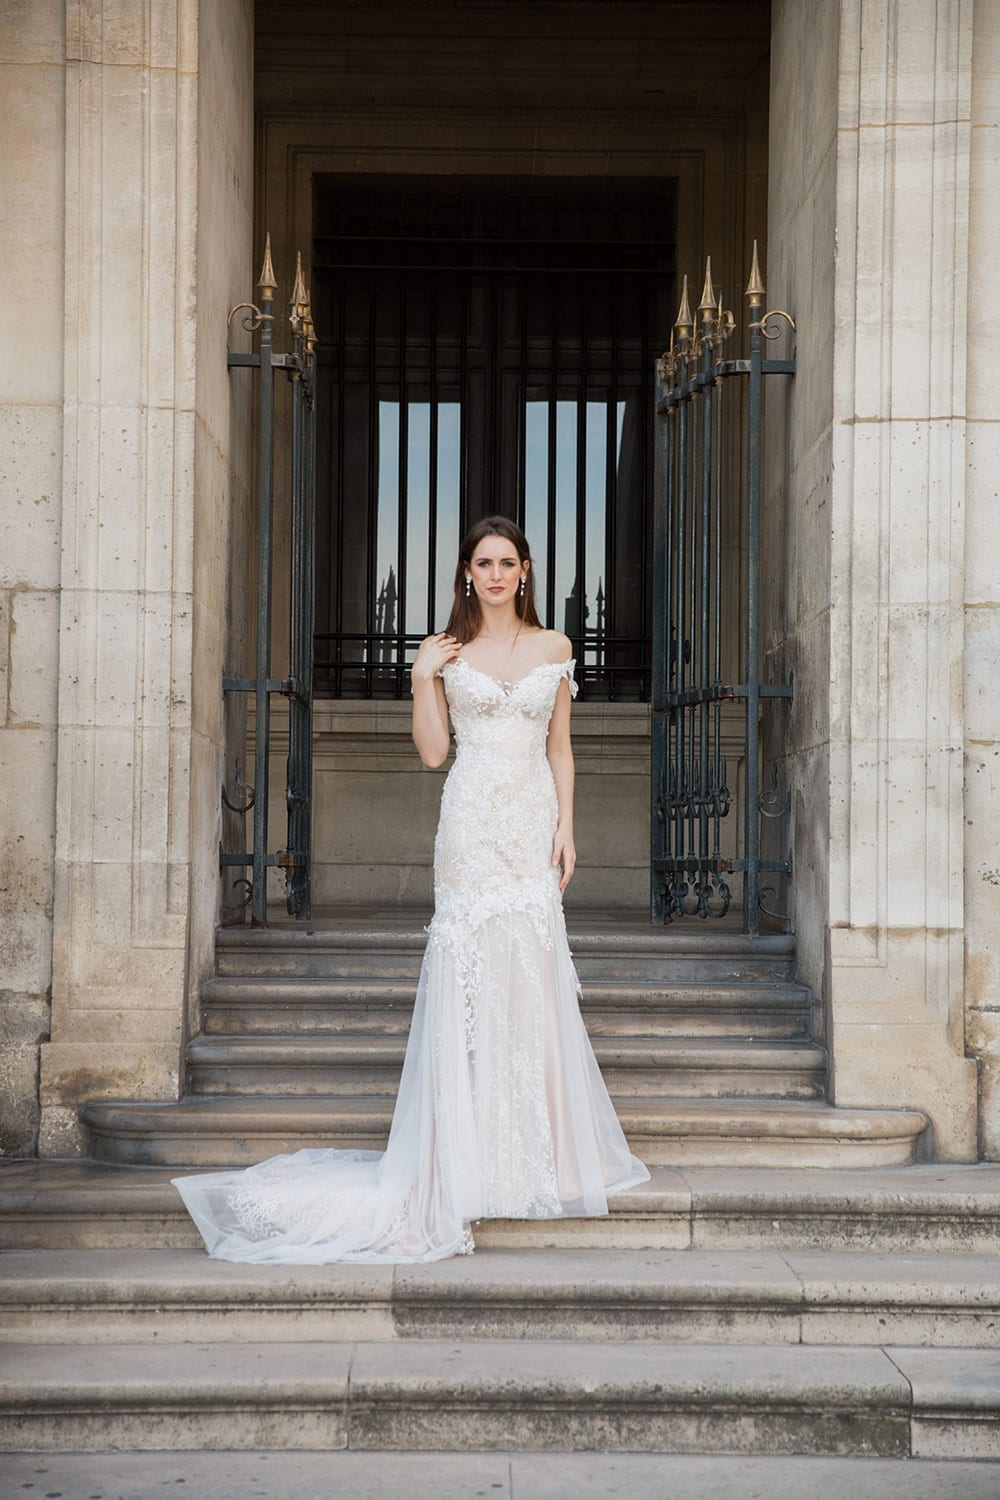 Model wearing Vinka Design Sashia Wedding Dress, an Off-Shoulder Fitted Lace and Tulle Gown on steps in Paris